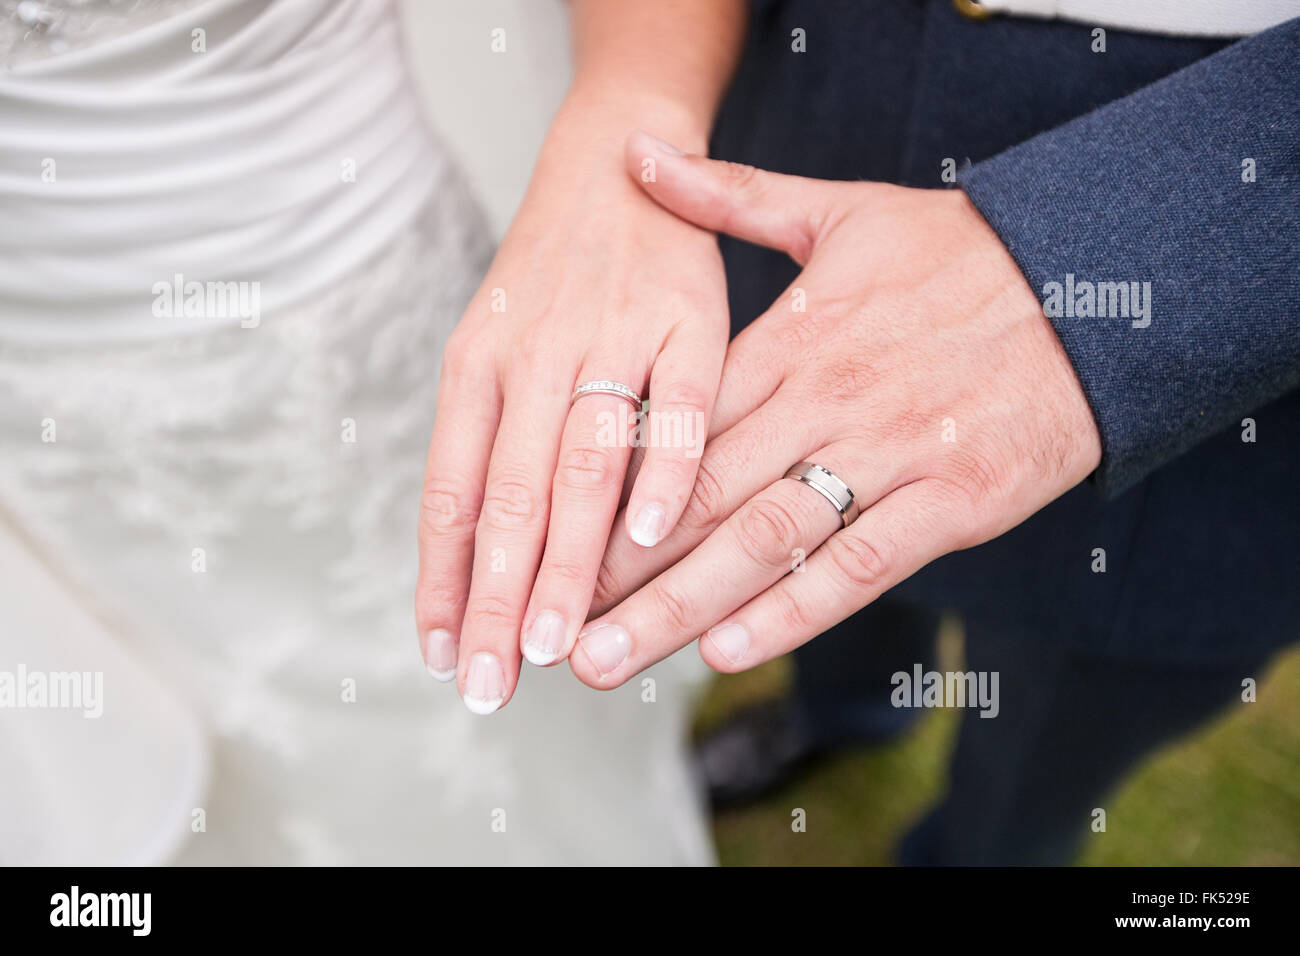 Wedding Rings Hands With Red Flowers Stock Photos & Wedding Rings ...